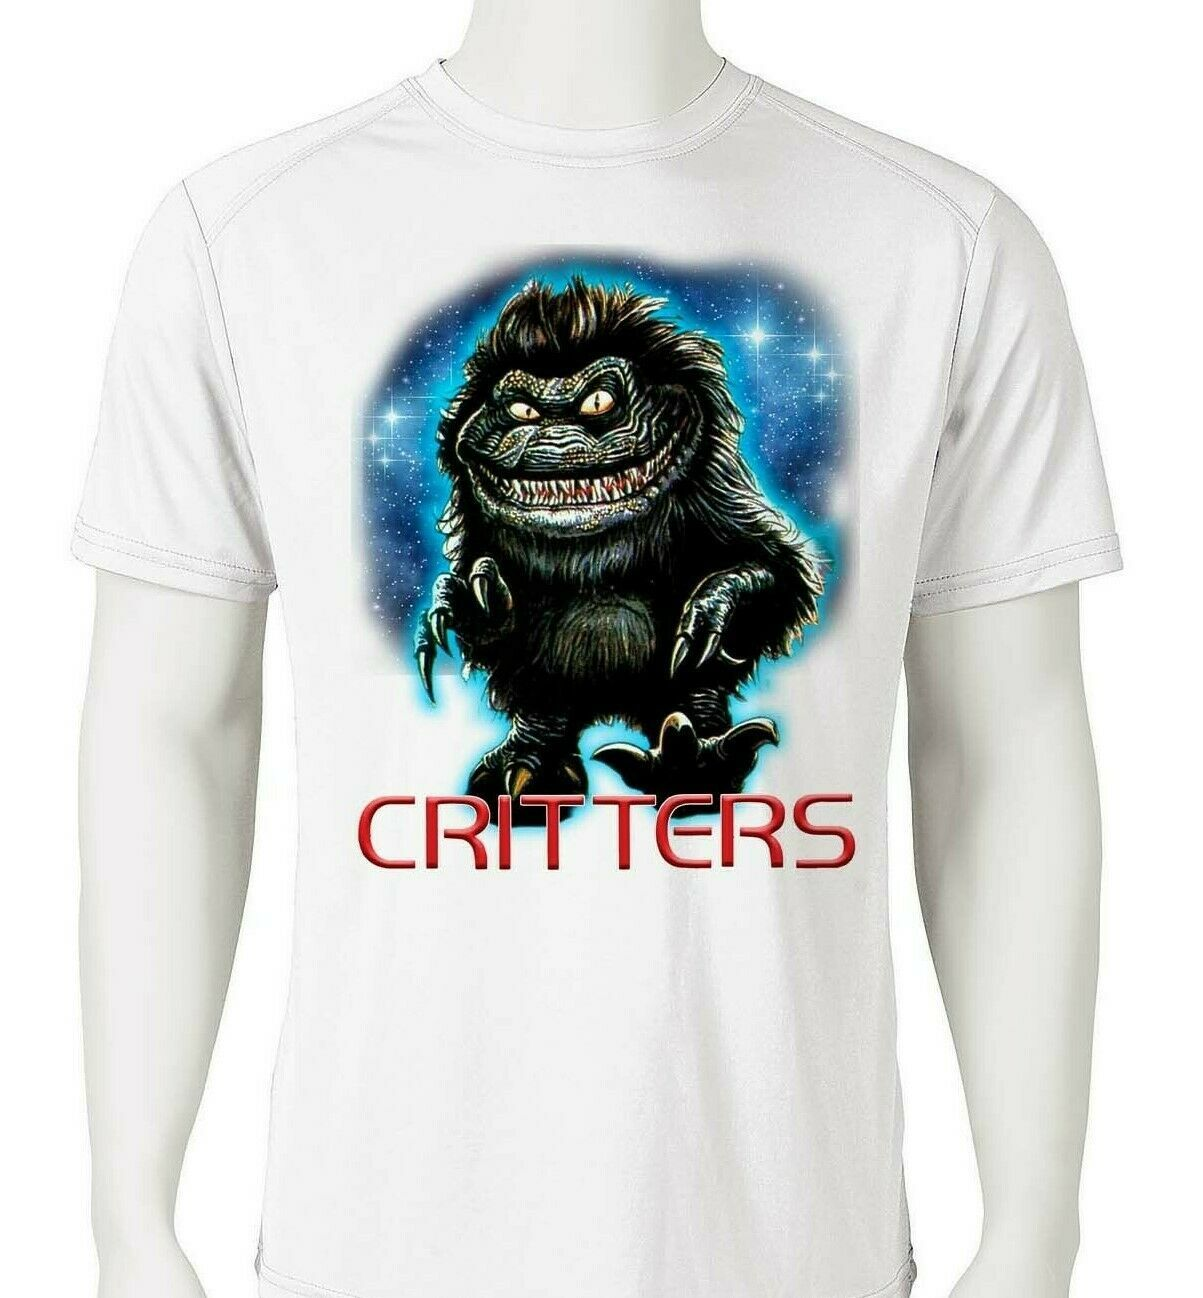 Critters Dri Fit graphic T-shirt moisture wicking retro 80s movie SPF tee